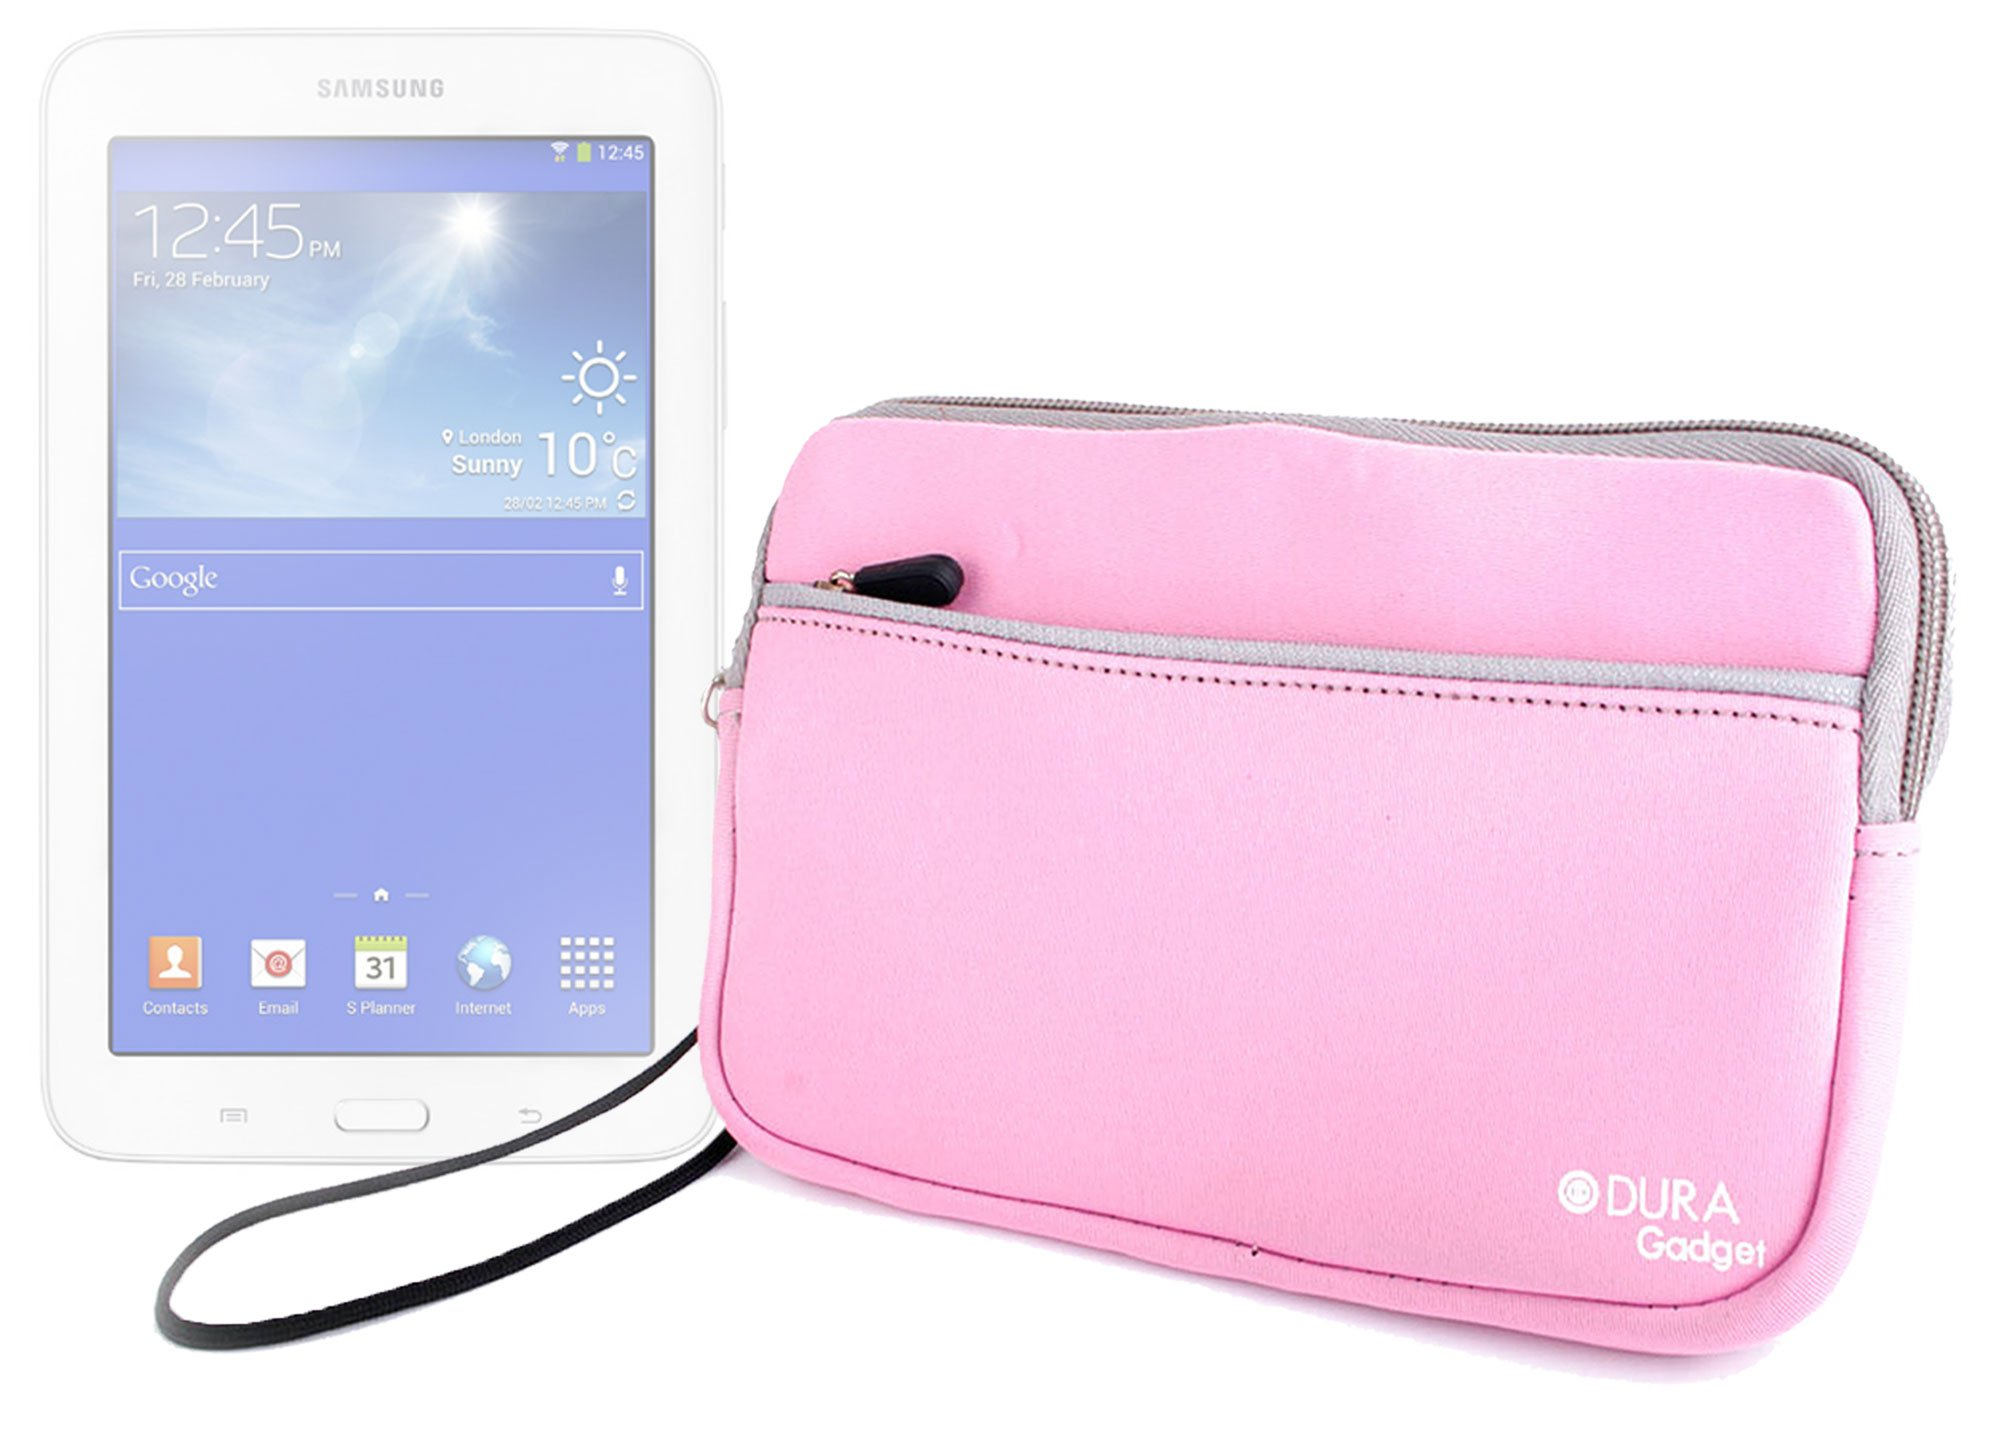 DURAGADGET Lightweight & Ultra-Portable 7'' Neoprene Case in Pink - Compatible with The New Samsung Galaxy Tab 3 Lite 7.0 VE/Samsung Galaxy Tab 3 V (SM-T113 / SM-T116NU)